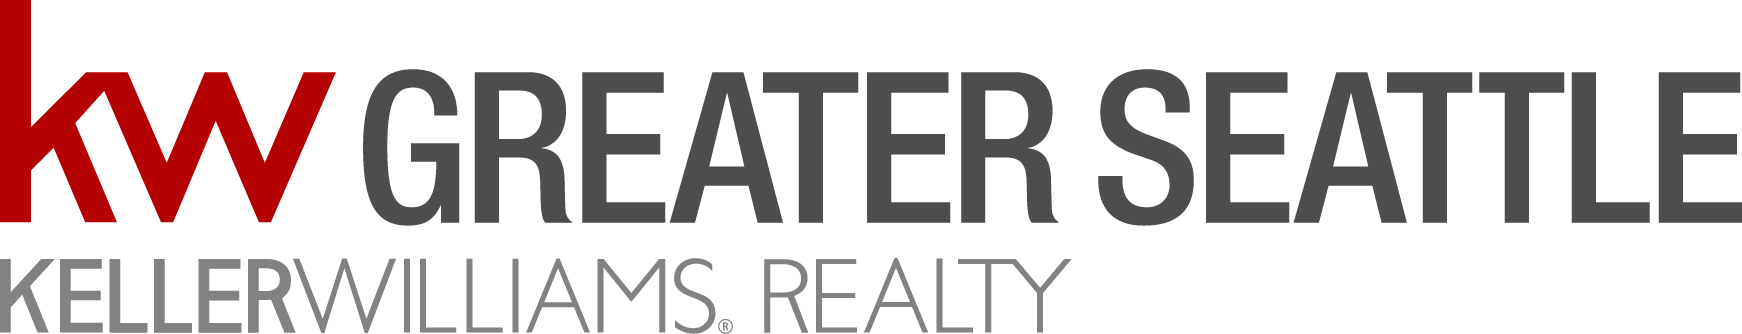 Keller Williams Greater Seattle logo